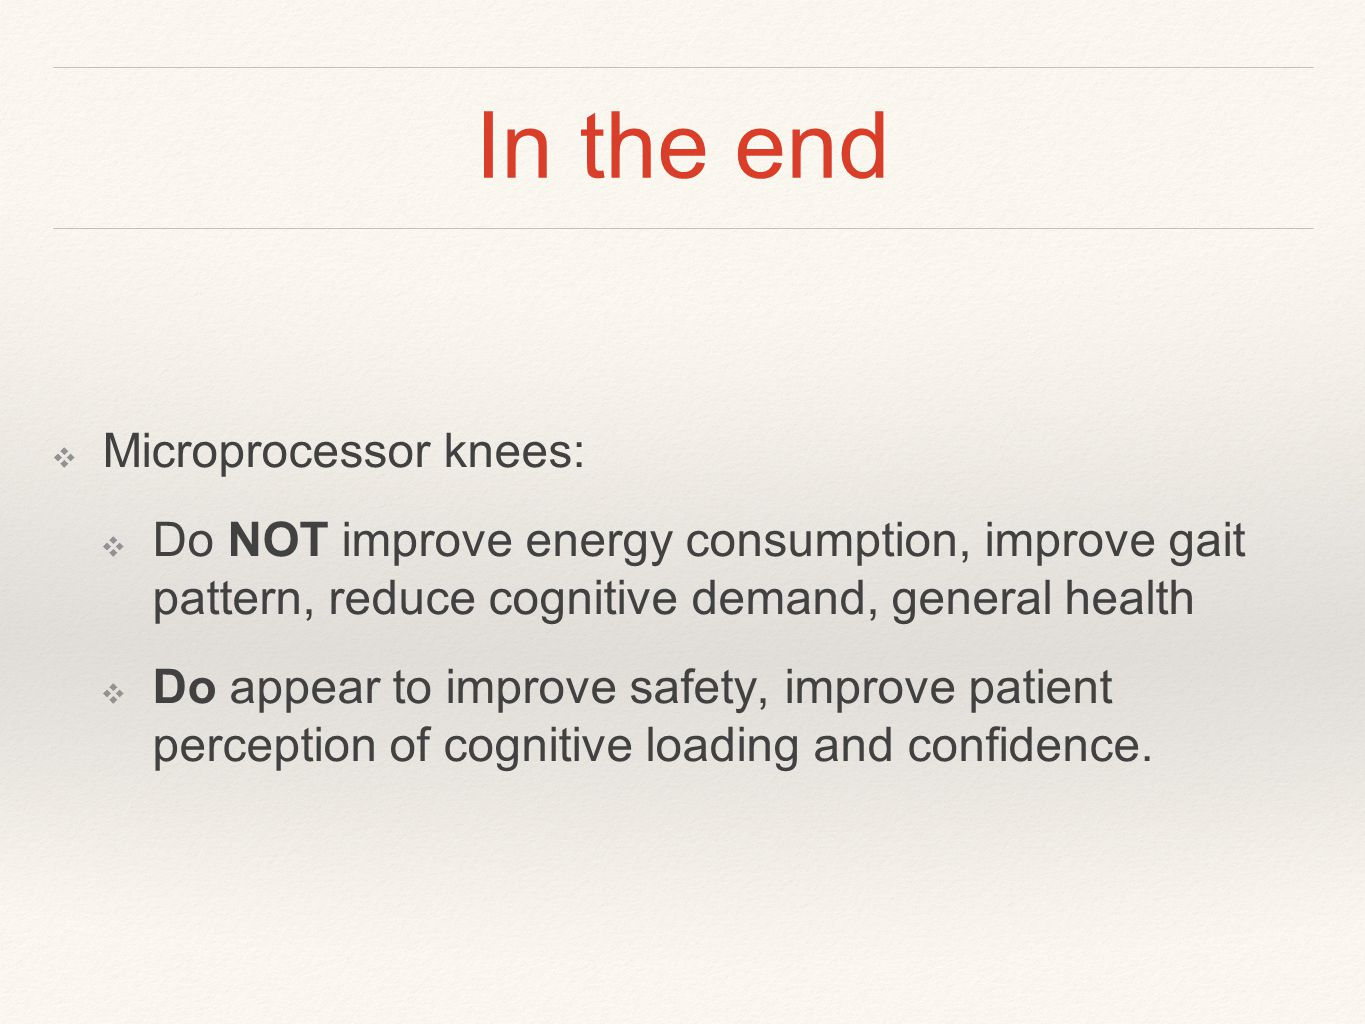 In the end ❖ Microprocessor knees: ❖ Do NOT improve energy consumption, improve gait pattern, reduce cognitive demand, general health ❖ Do appear to improve safety, improve patient perception of cognitive loading and confidence.